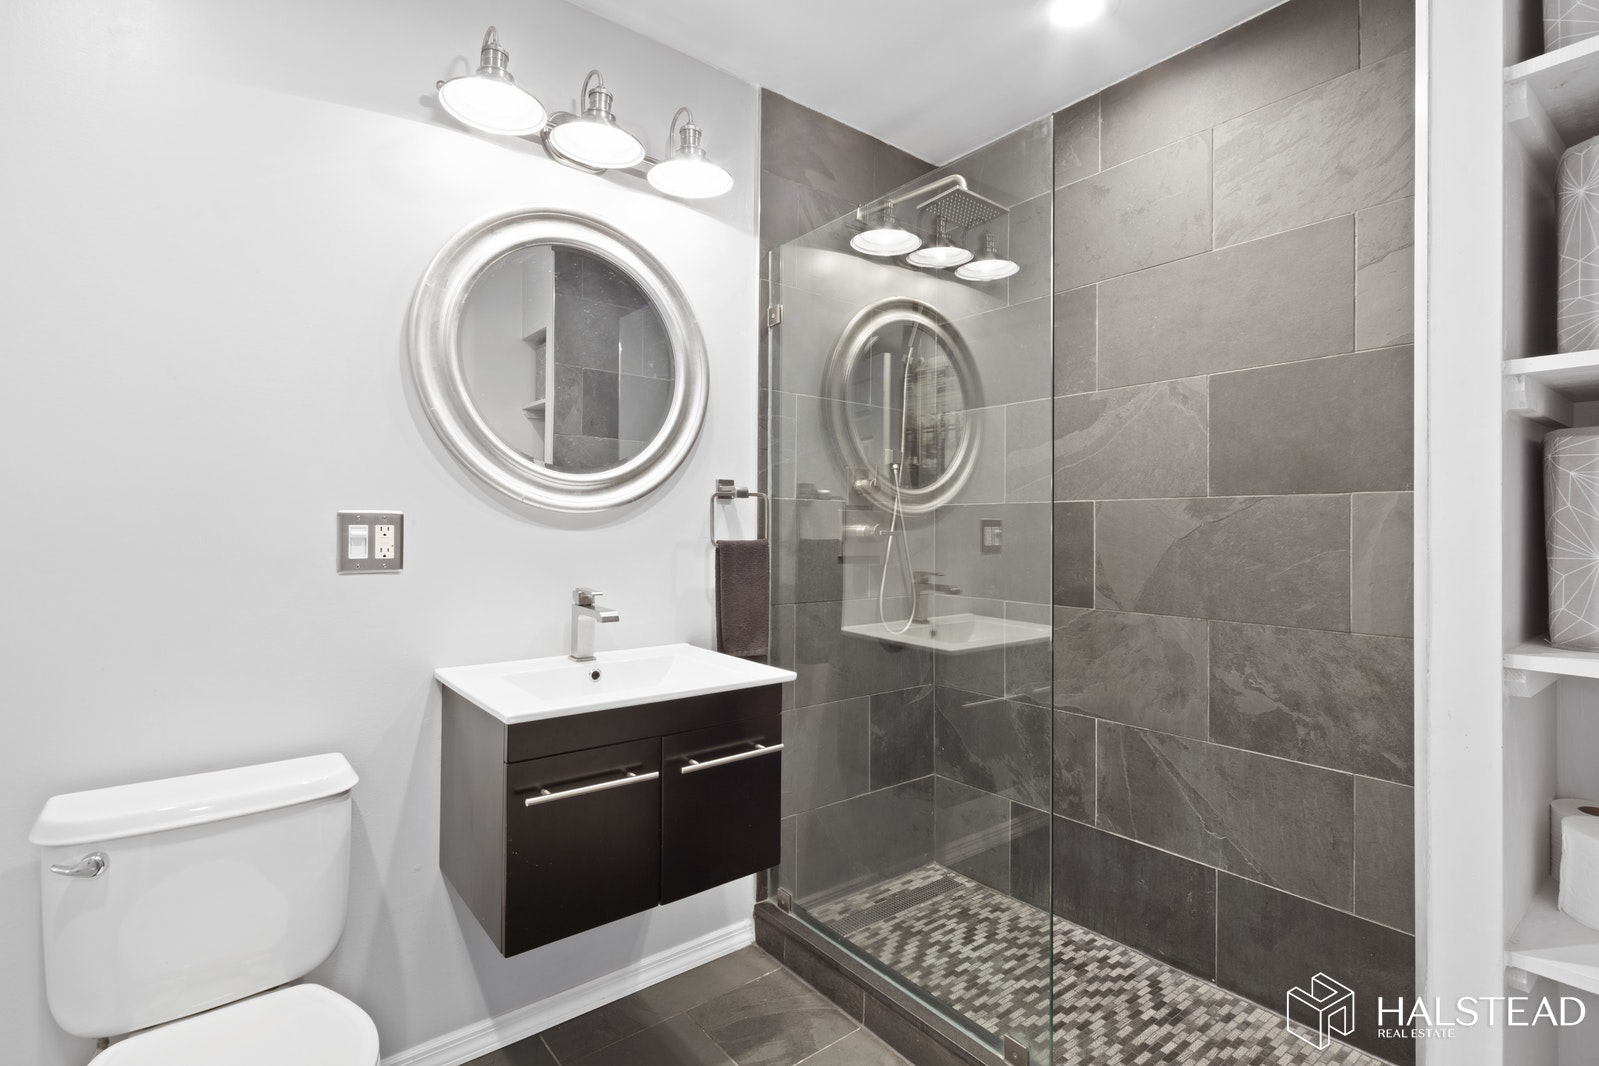 1483 Prospect Place 3, Crown Heights, Brooklyn, NY, 11213, $714,000, Property For Sale, Halstead Real Estate, Photo 7